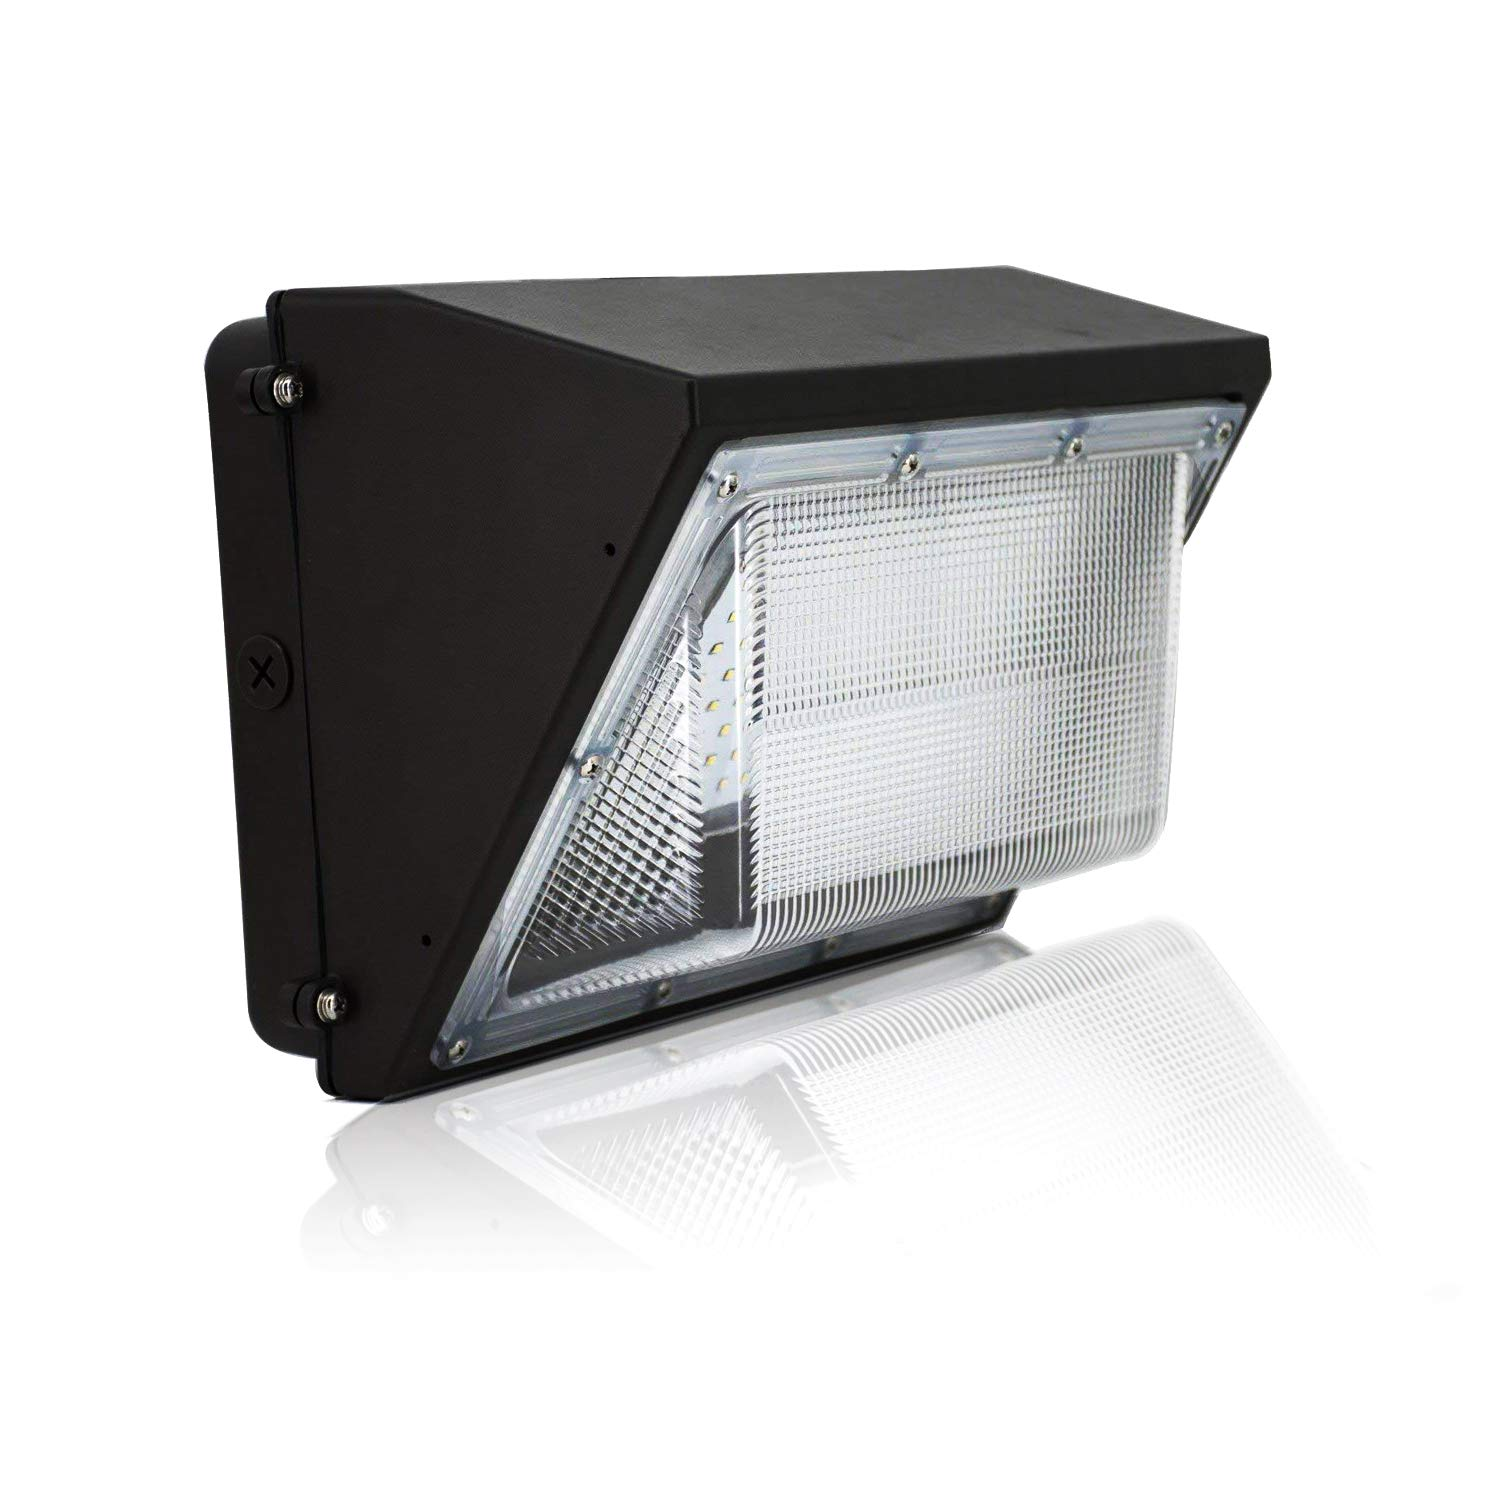 CNSUNWAY 150W LED Wall Pack - Valuable Waterproof Flood Light, 1000 Watt HPS/HID Replacement, 5000K 20000LM, Commercial & Industrial Outdoor Lighting